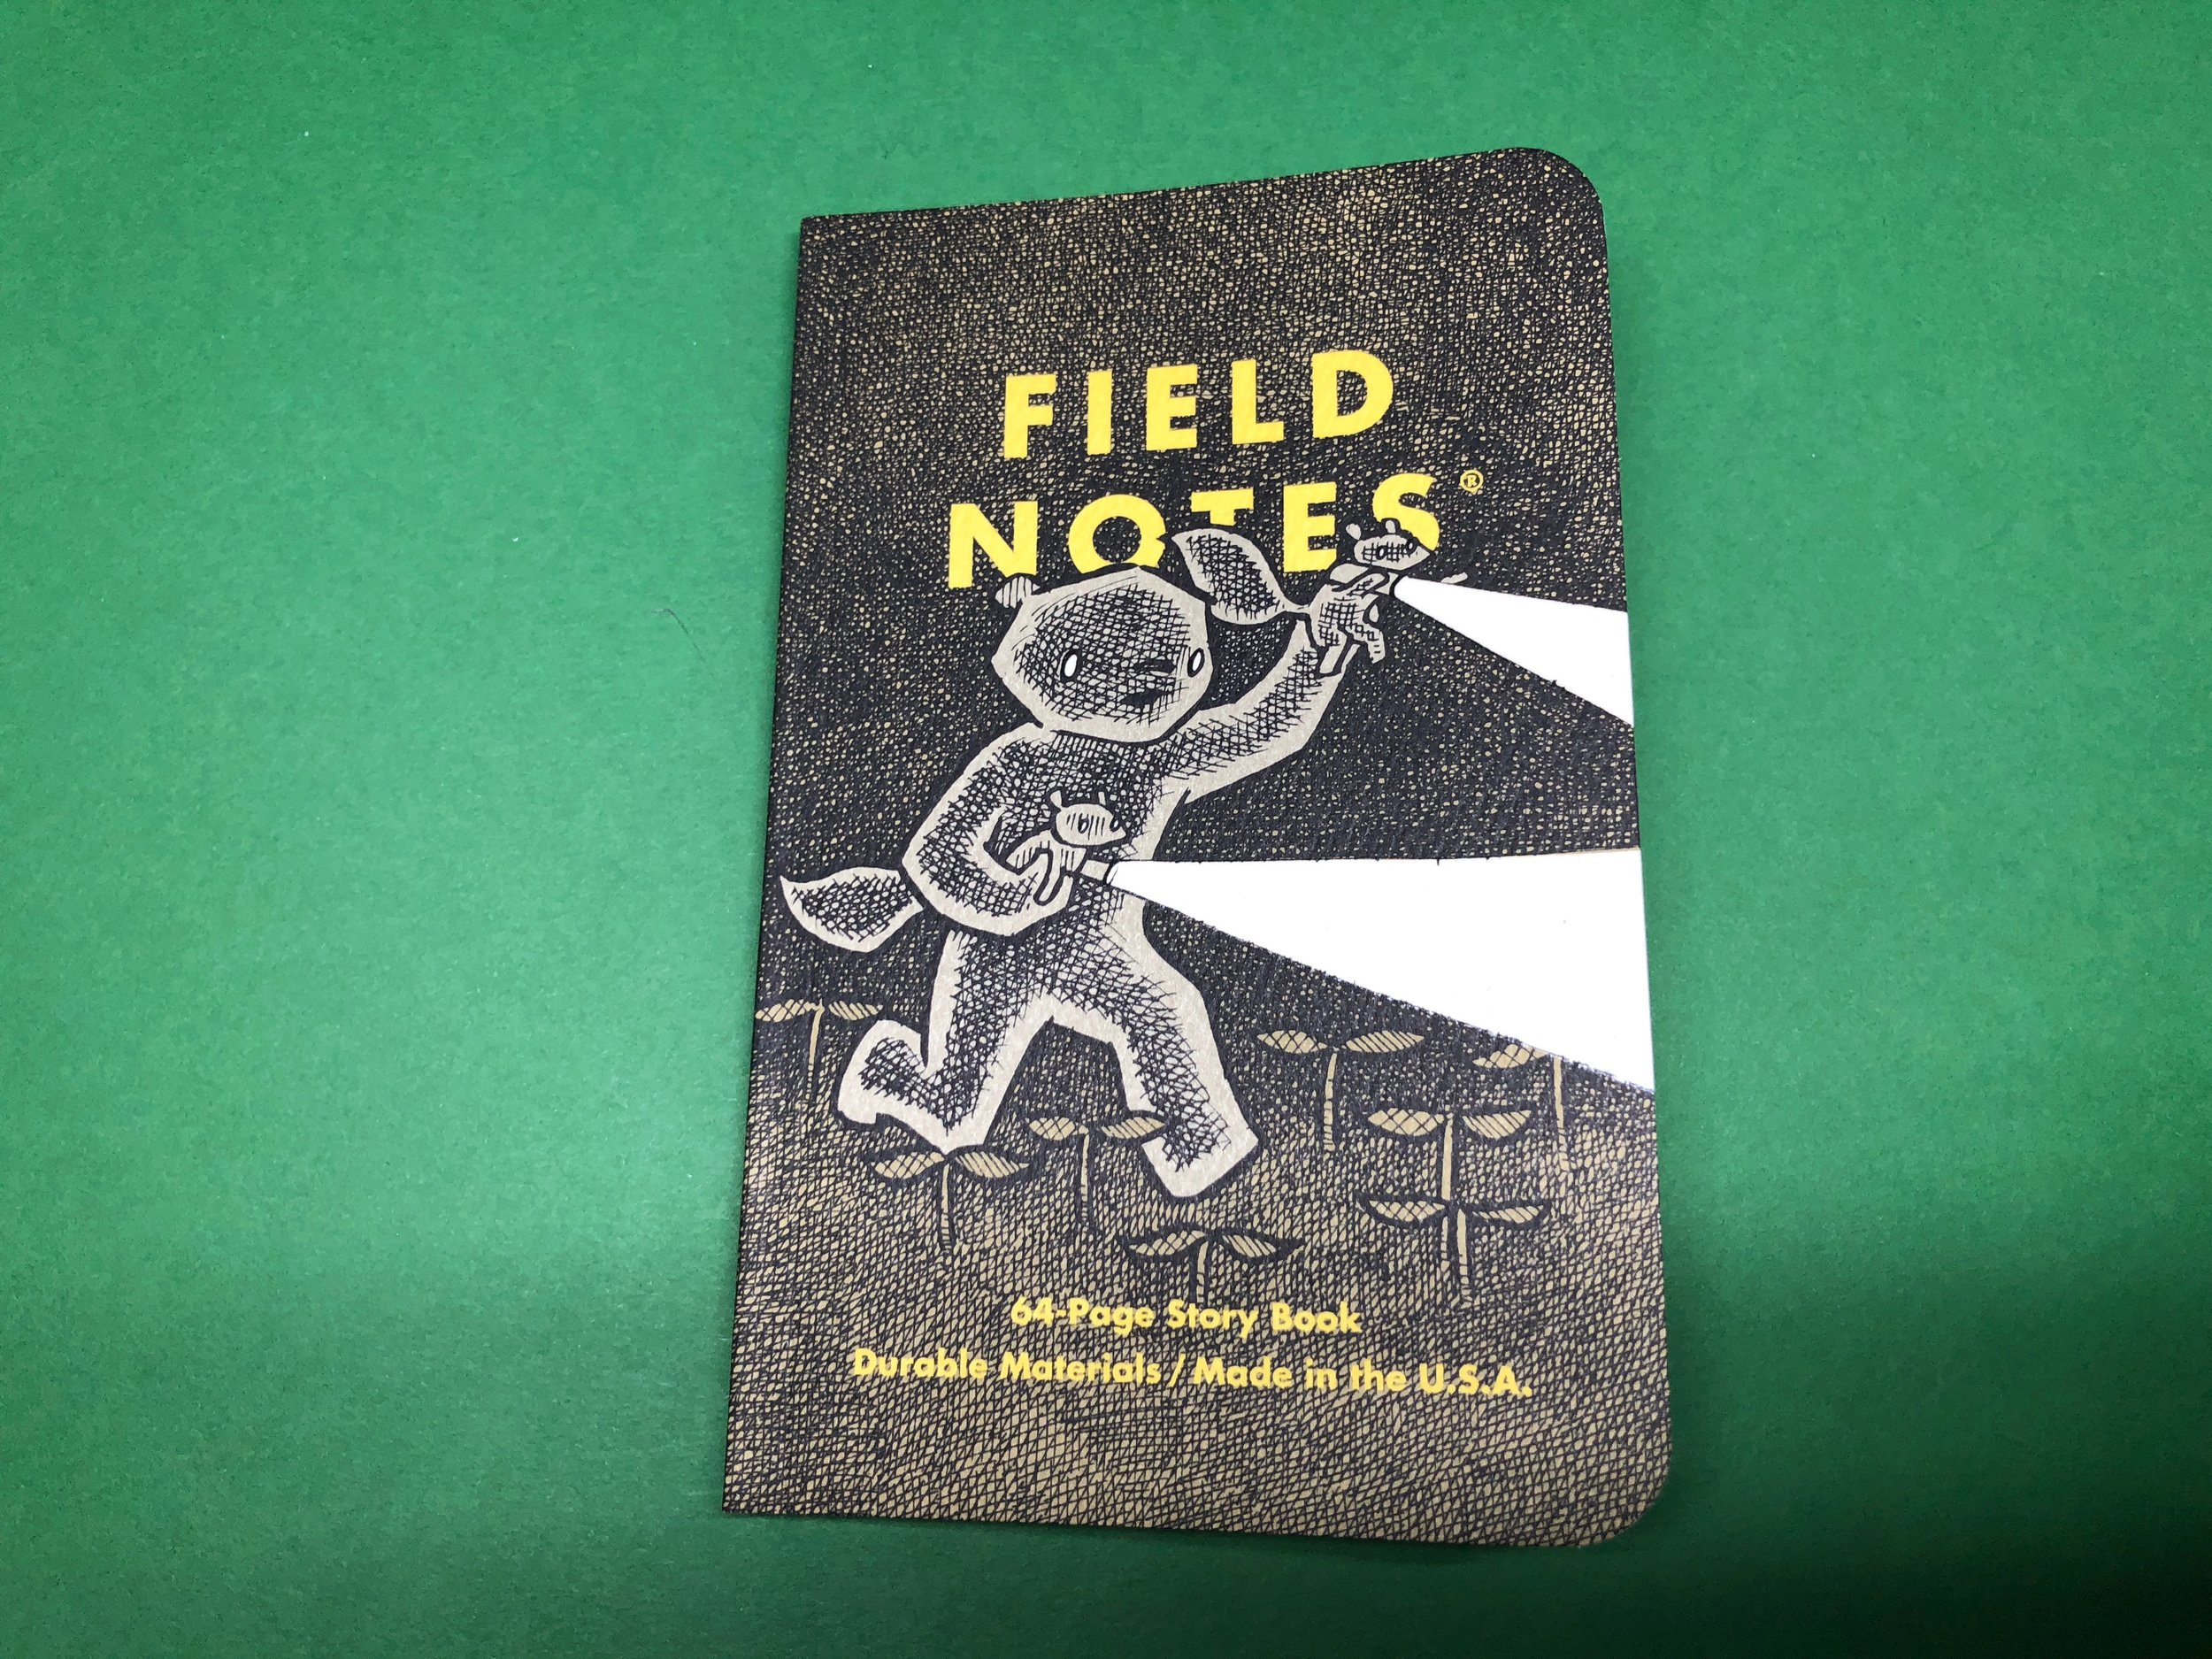 field-notes-haxley-2.jpg